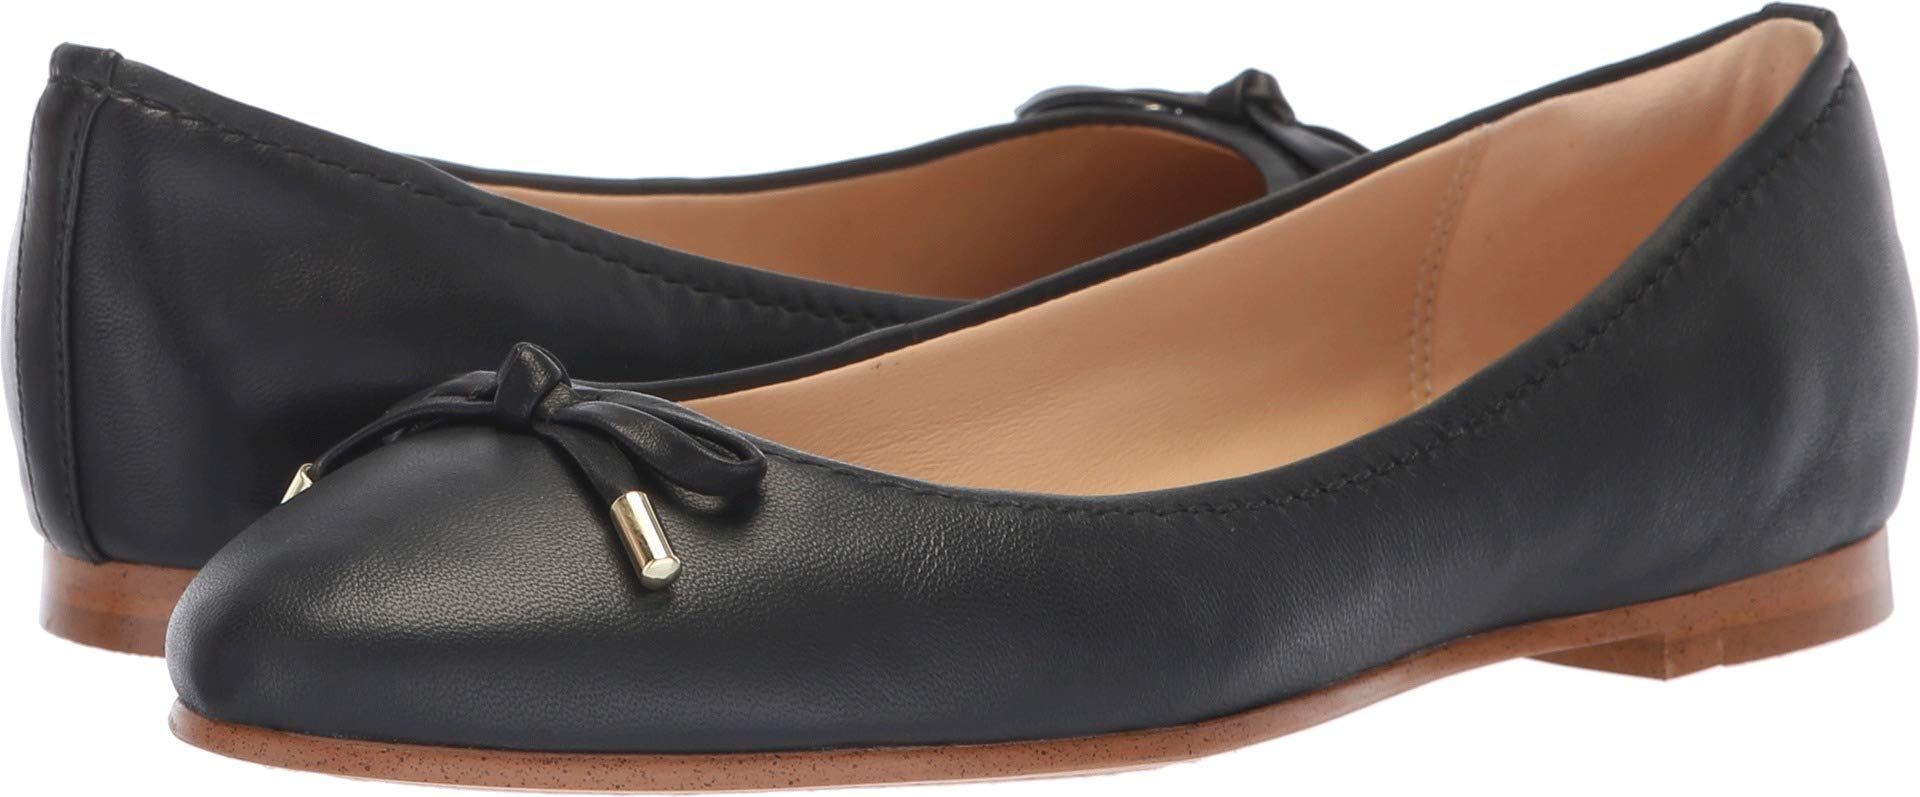 CLARKS Womens Grace Lily Ballet Flat, Black Leather, Size 7.5